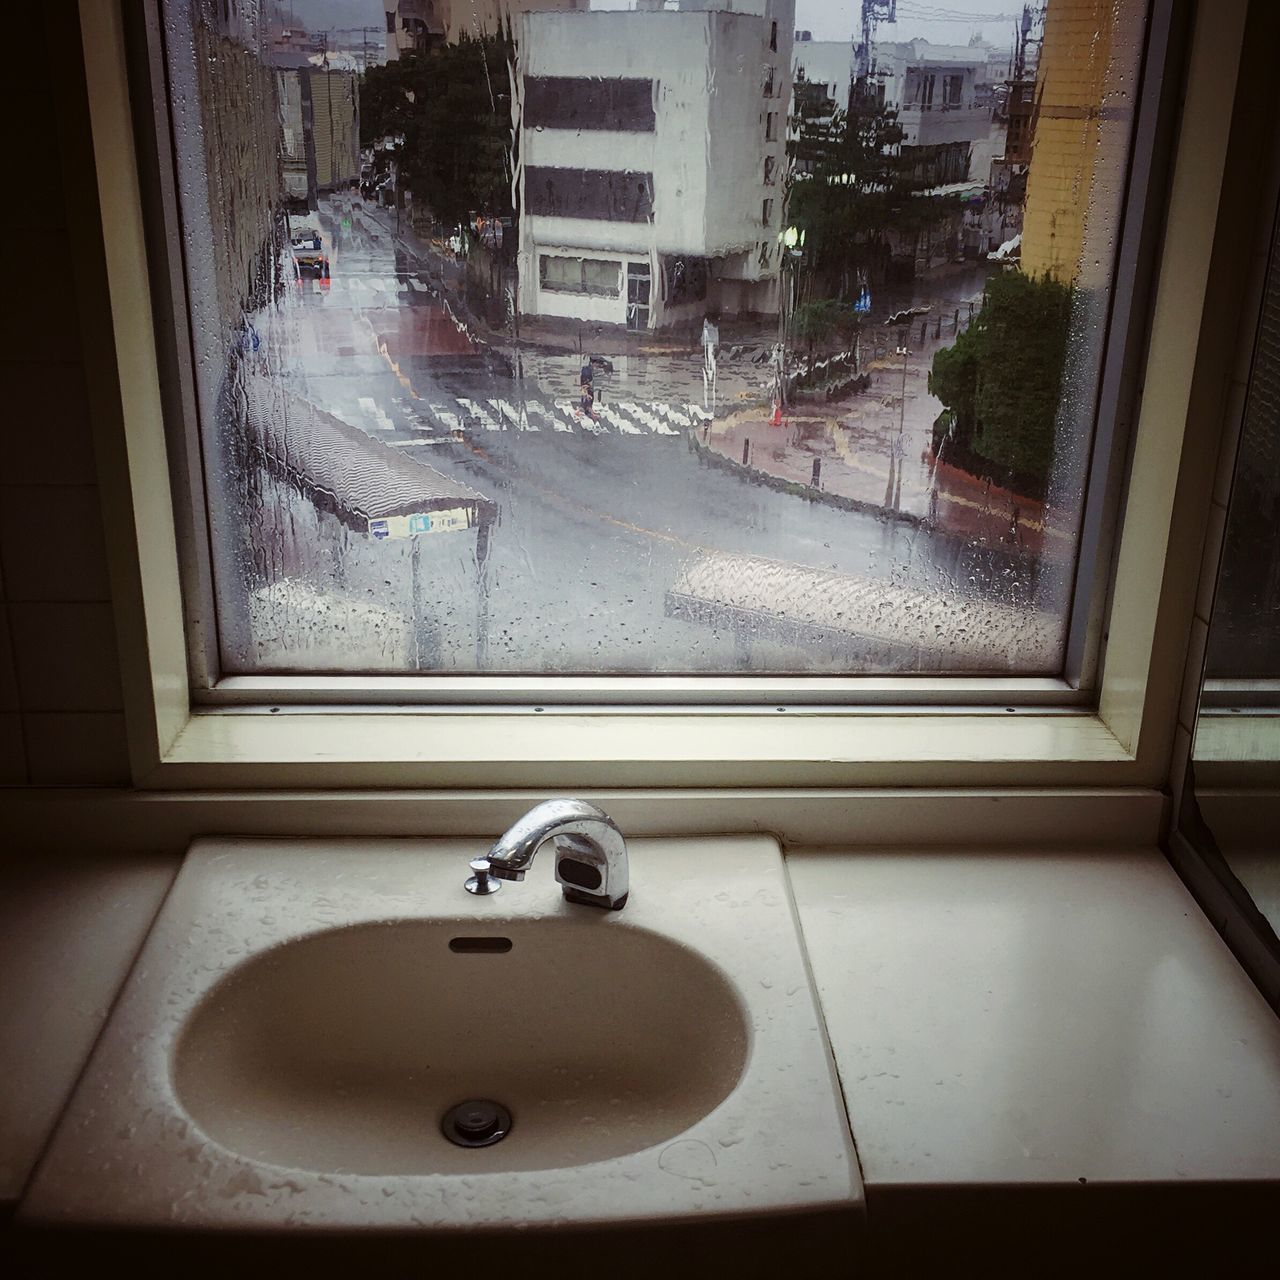 Toilet Rest Room Window Rainy Days Rainy Day